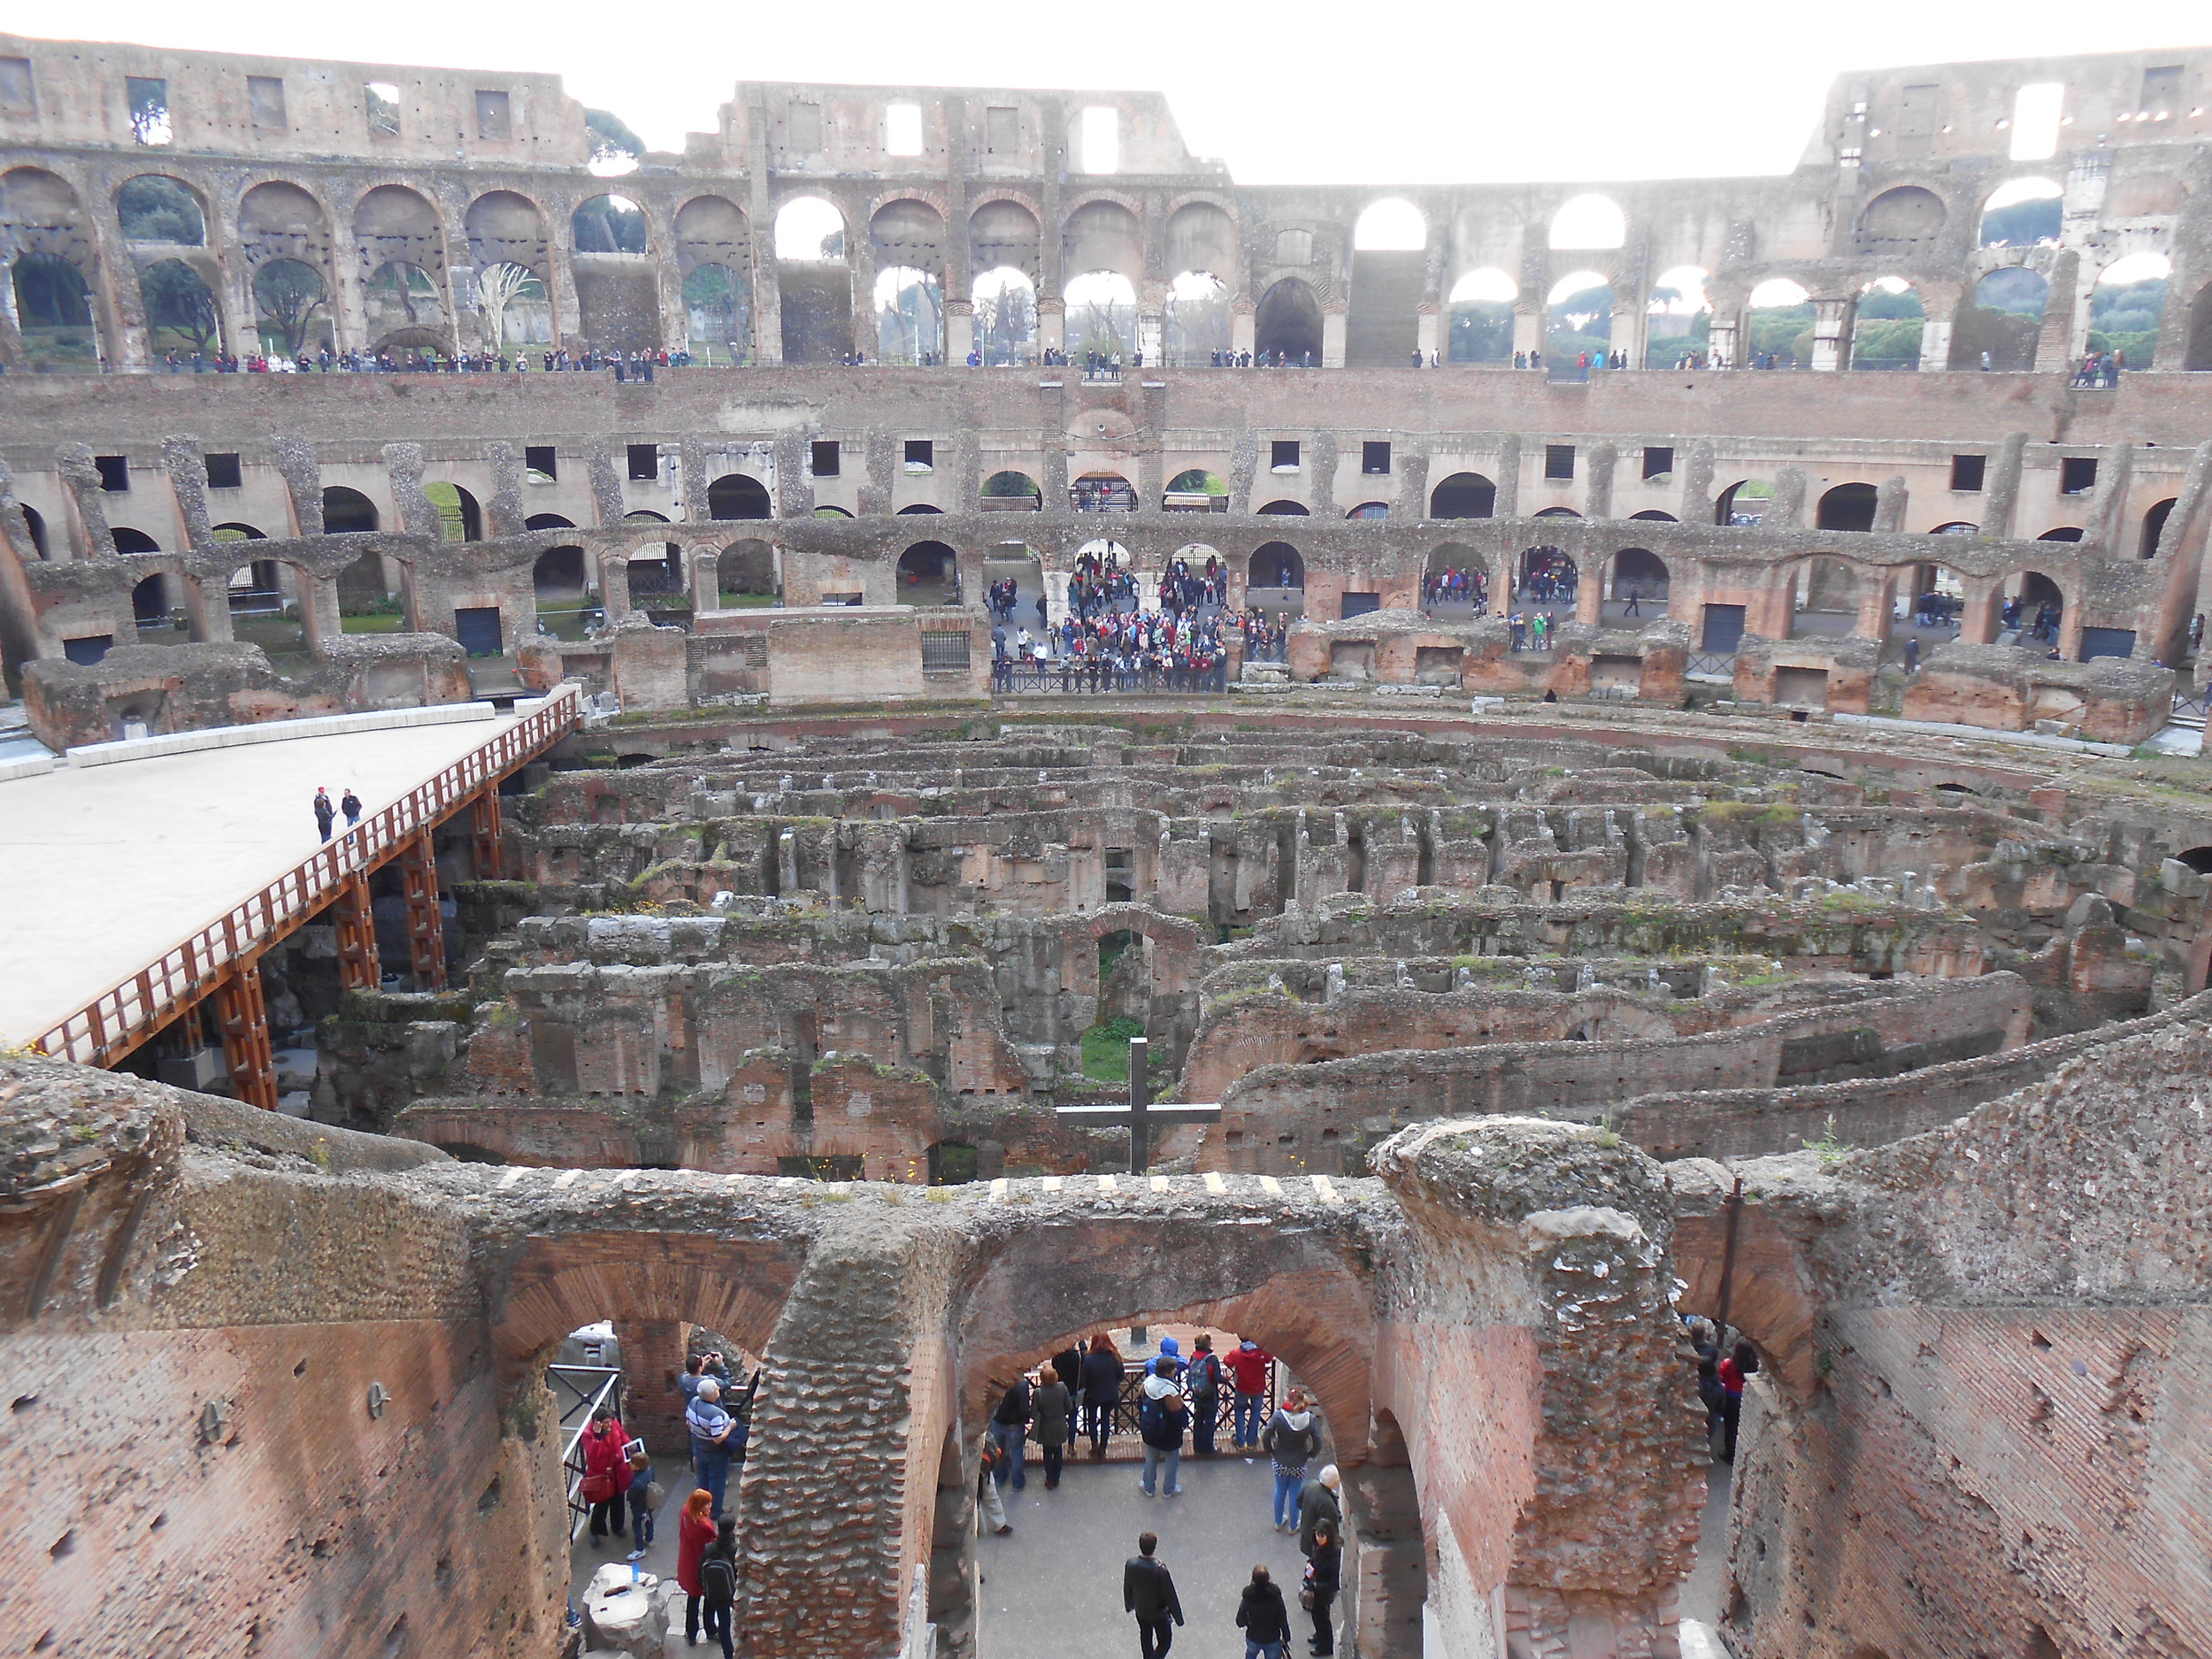 The Colosseum had seating for over 50,000 spectators who were seated in order of social class.